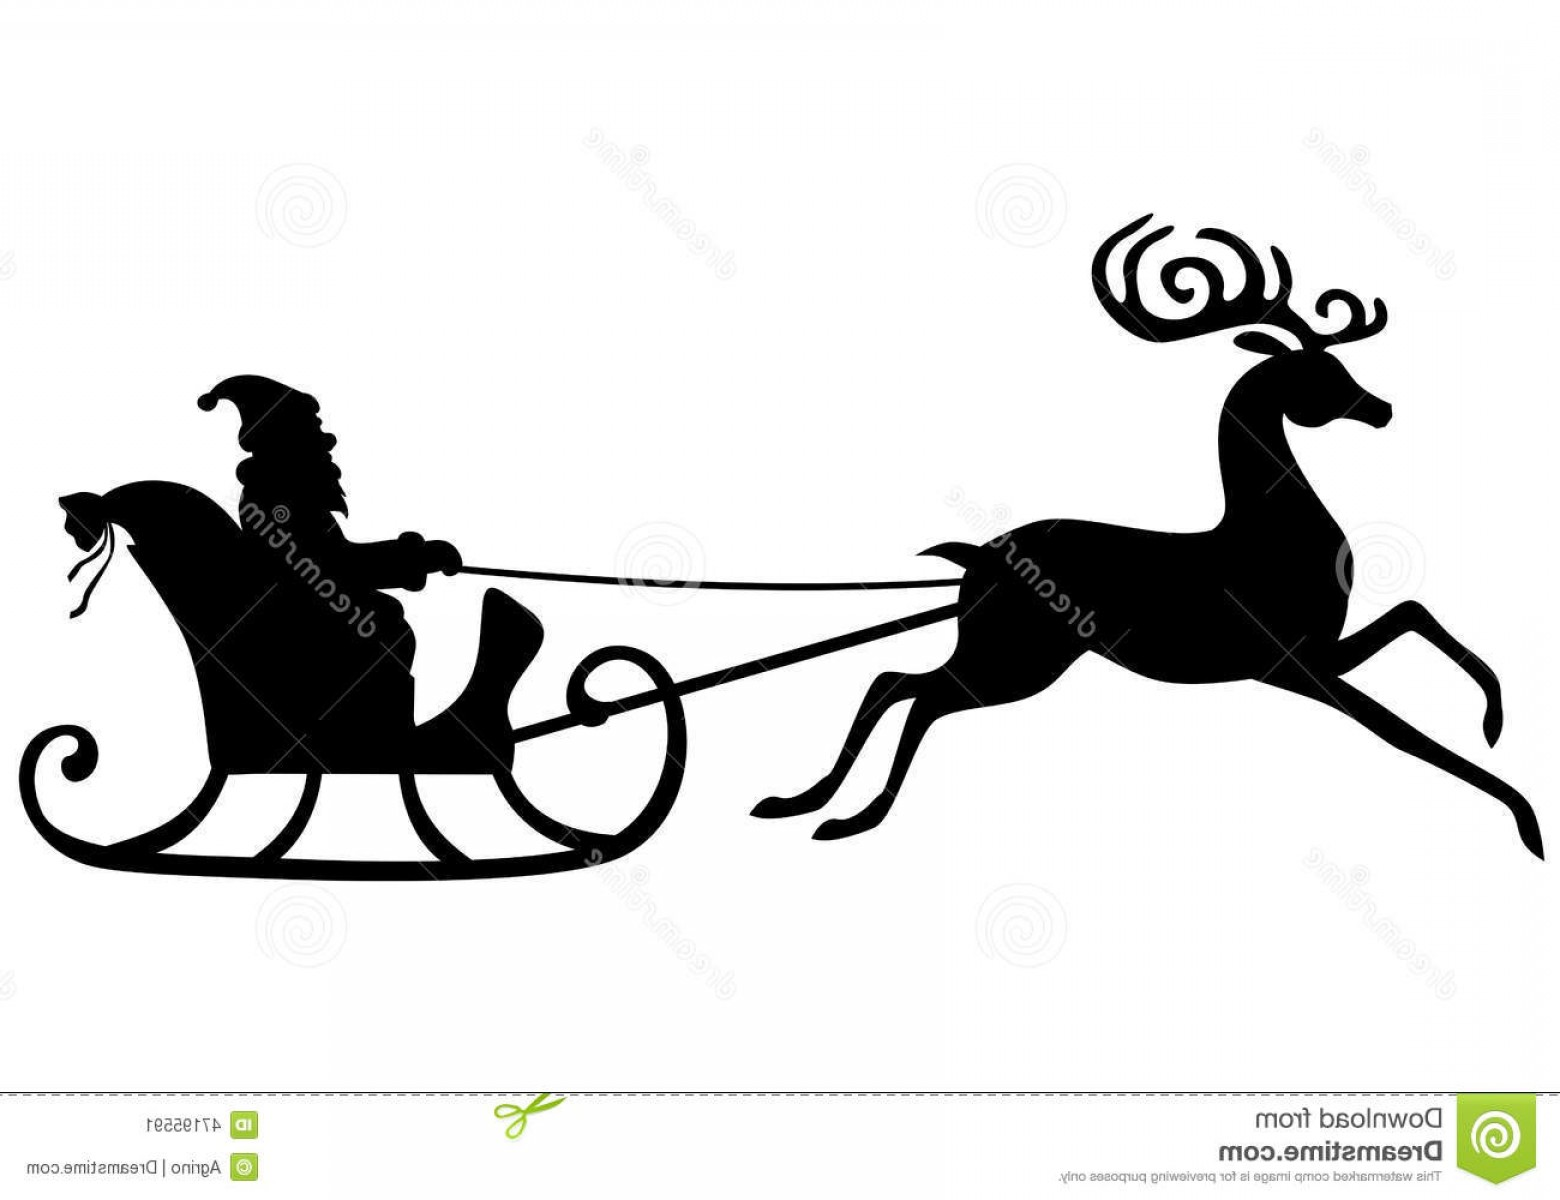 Black Santa Sleigh Vector: Stock Illustration Silhouette Santa Claus Riding Deer Sleigh Vector Illustrations Rides Pulled Beautiful Antlered Image